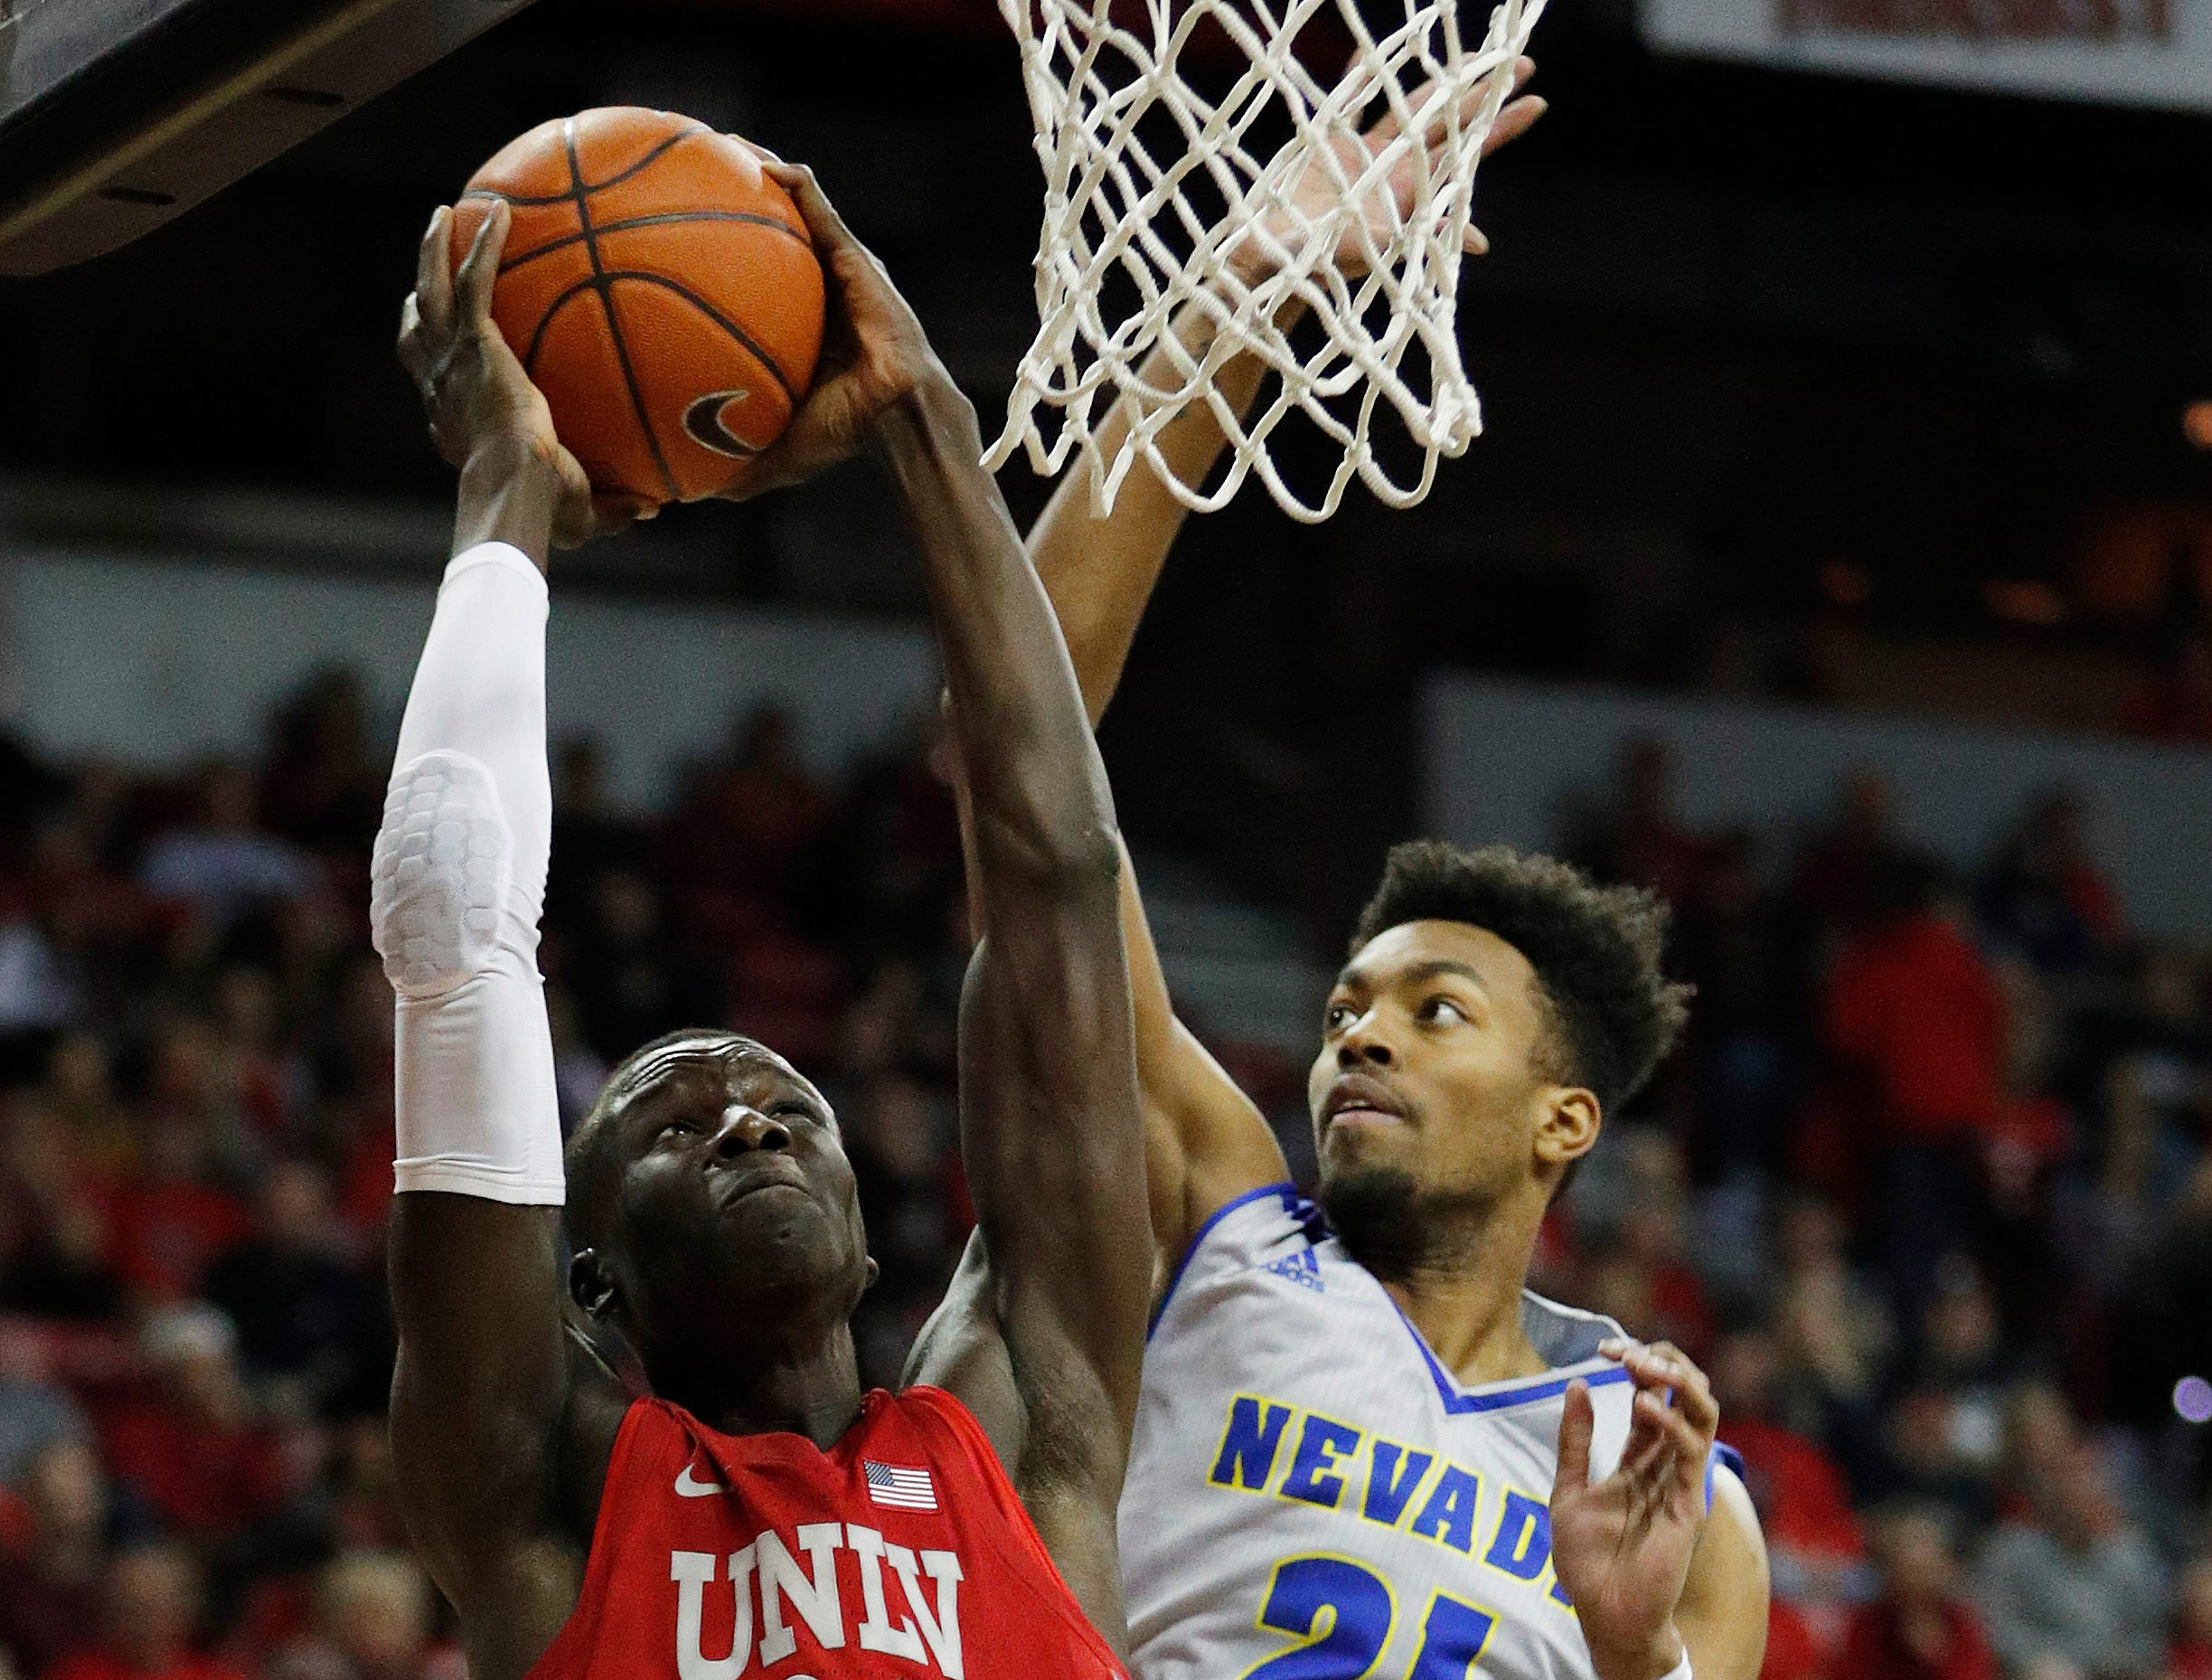 UNLV's Cheikh Mbacke Diong (34) shoots against Nevada's Jordan Brown during the first half of an NCAA college basketball game Tuesday, Jan. 29, 2019, in Las Vegas. (AP Photo/John Locher)